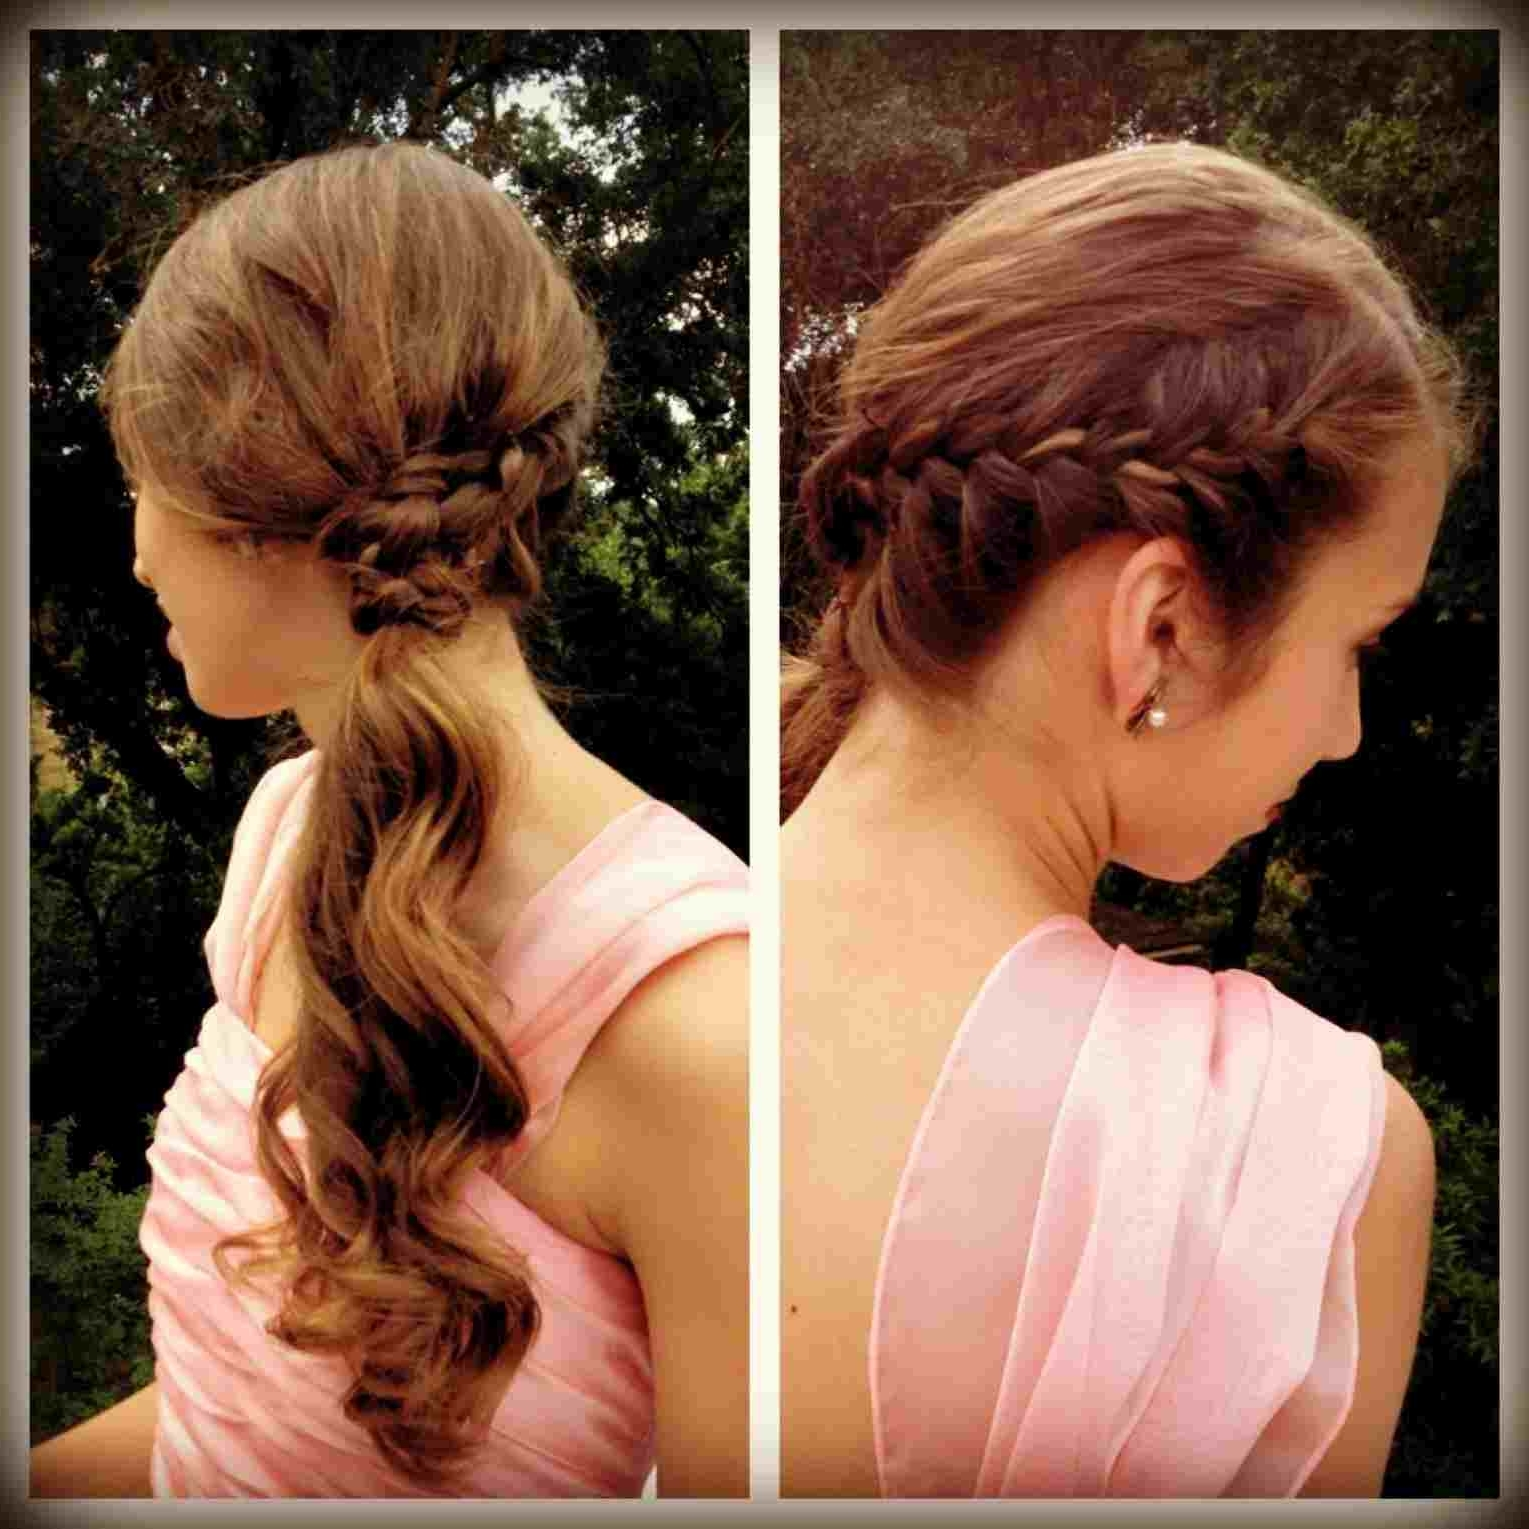 Braid Ponyg Hair Curly Rhvidesainfo Emilyus Hairstyle For Our With Most Up To Date Side Braid Hairstyles For Curly Ponytail (View 4 of 20)